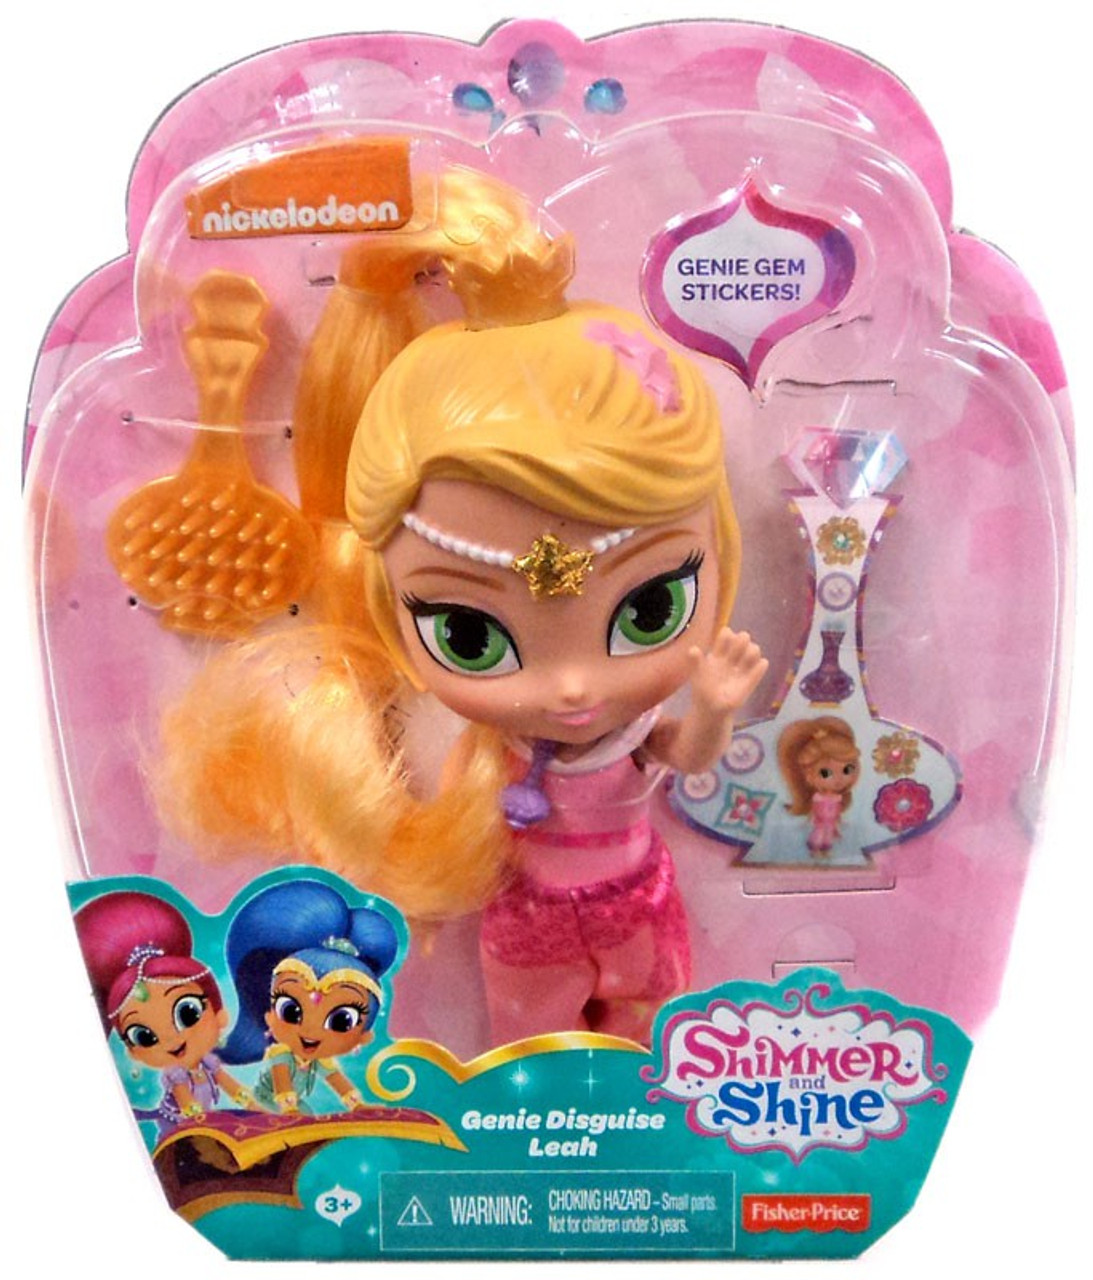 Fisher Price Shimmer Shine Genie Disguise Leah 6 Basic Doll Toywiz